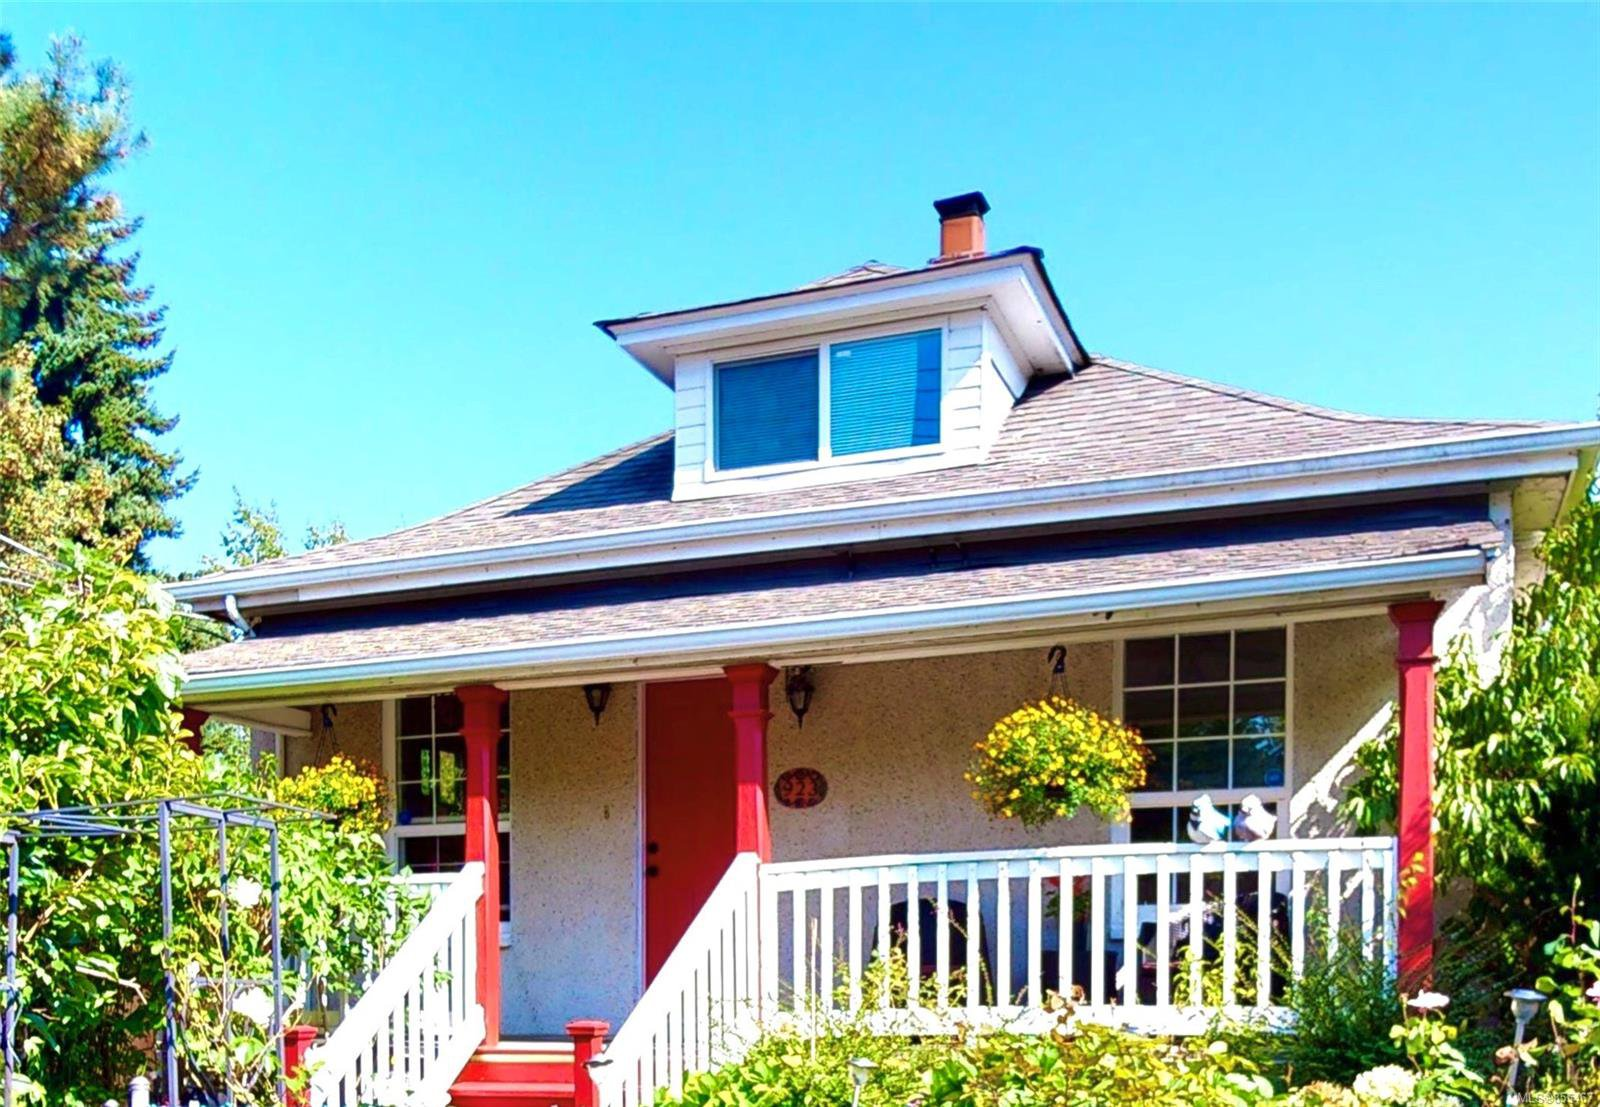 Main Photo: 923 Hereward Rd in : VW Victoria West Single Family Detached for sale (Victoria West)  : MLS®# 855467